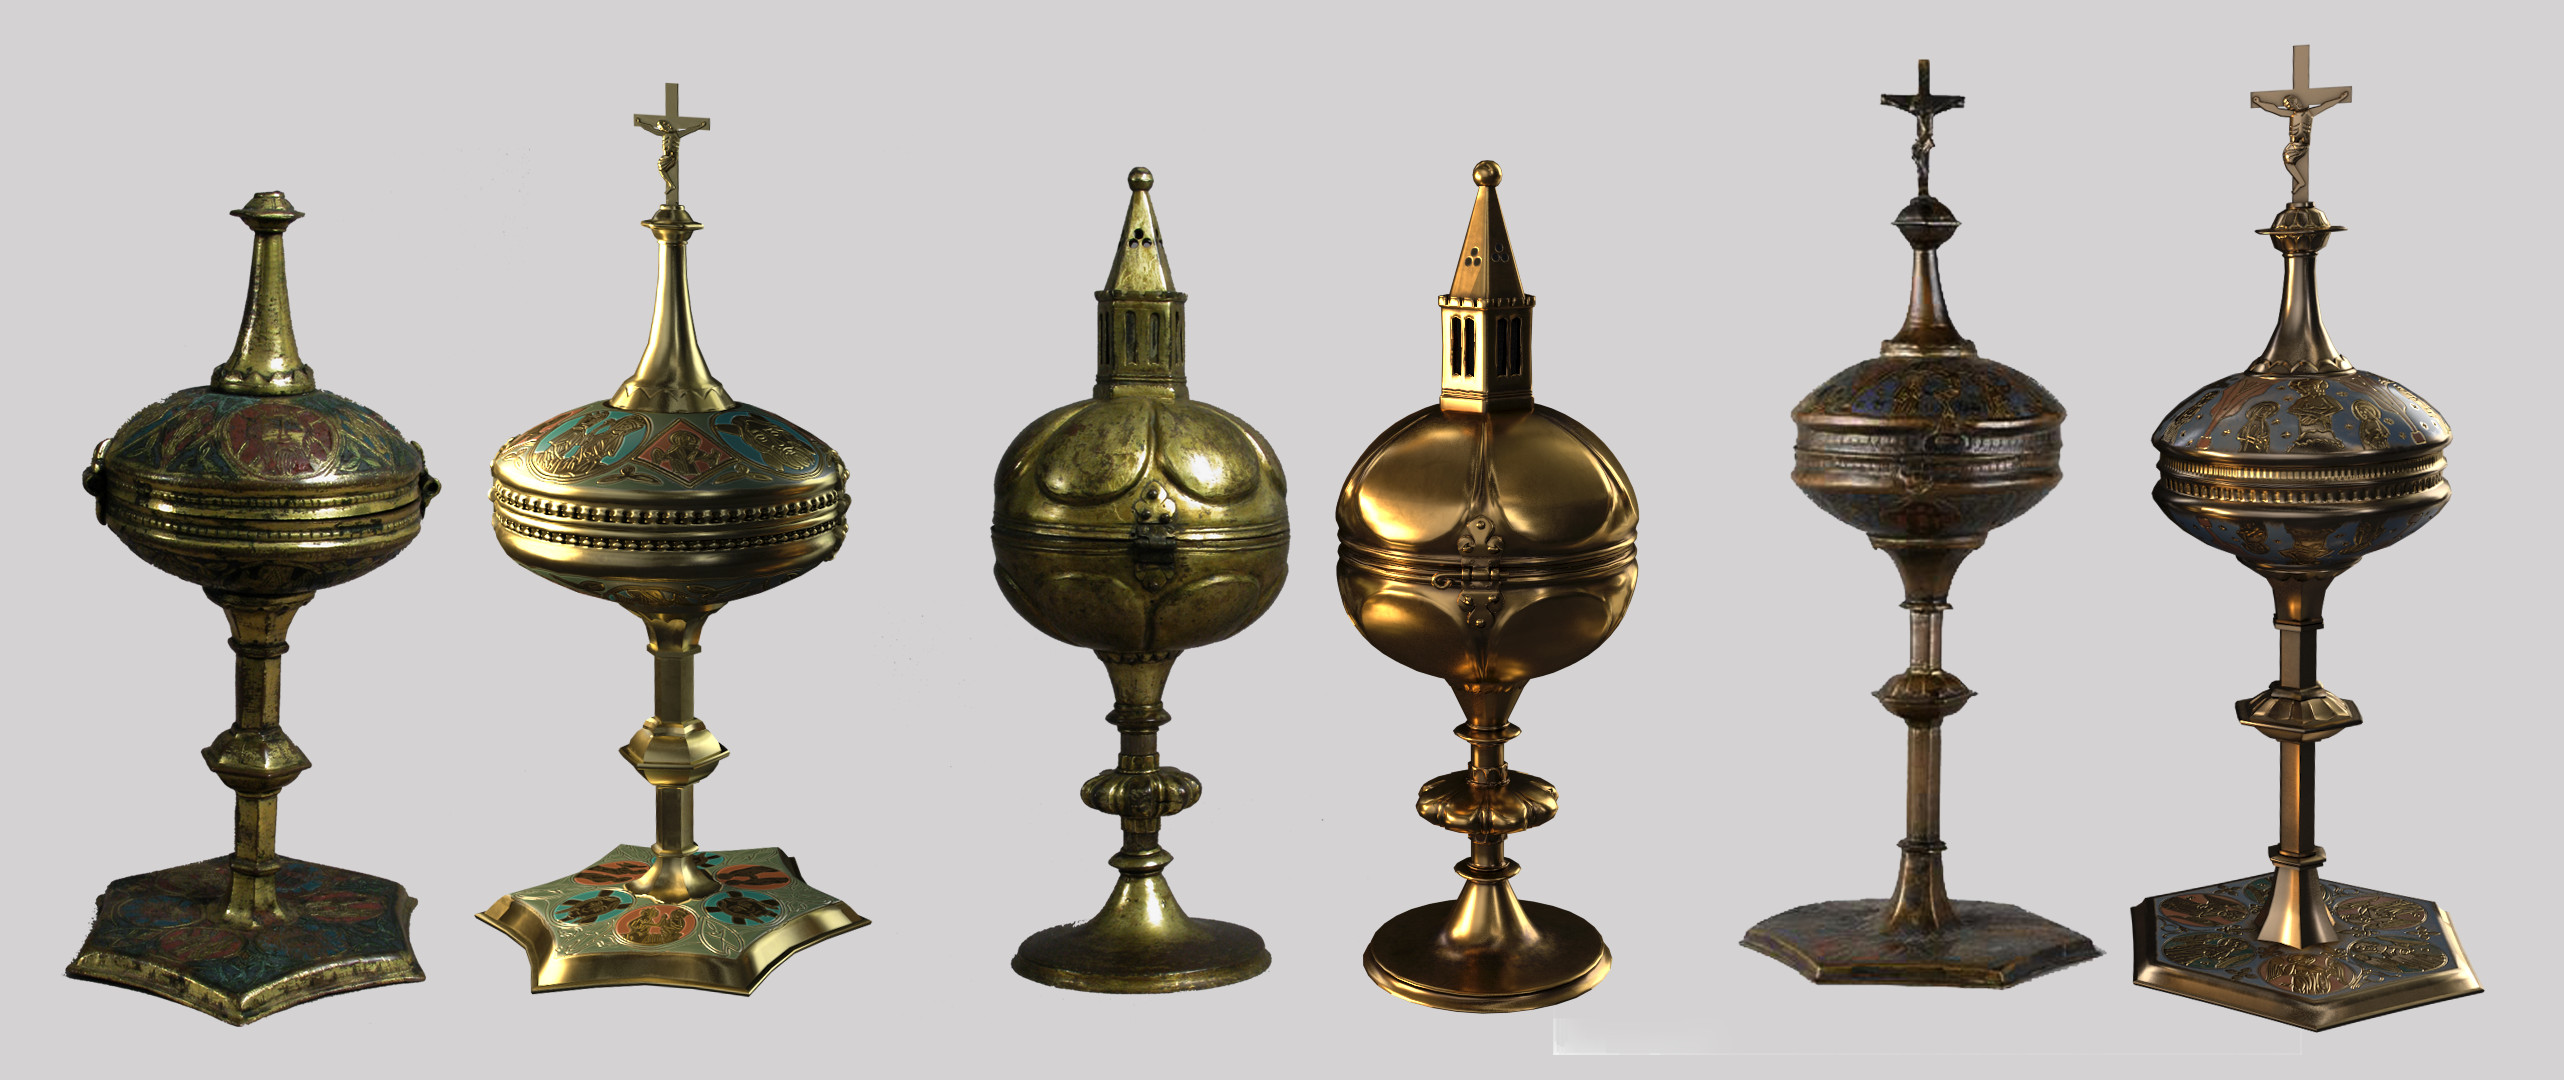 Each ciborium with the original reference photo. In certain cases, broken pieces had to be replaced, along with chipped or missing enamel plates. Missing or deteriorated items were rebuilt based on examples of similar artifacts.